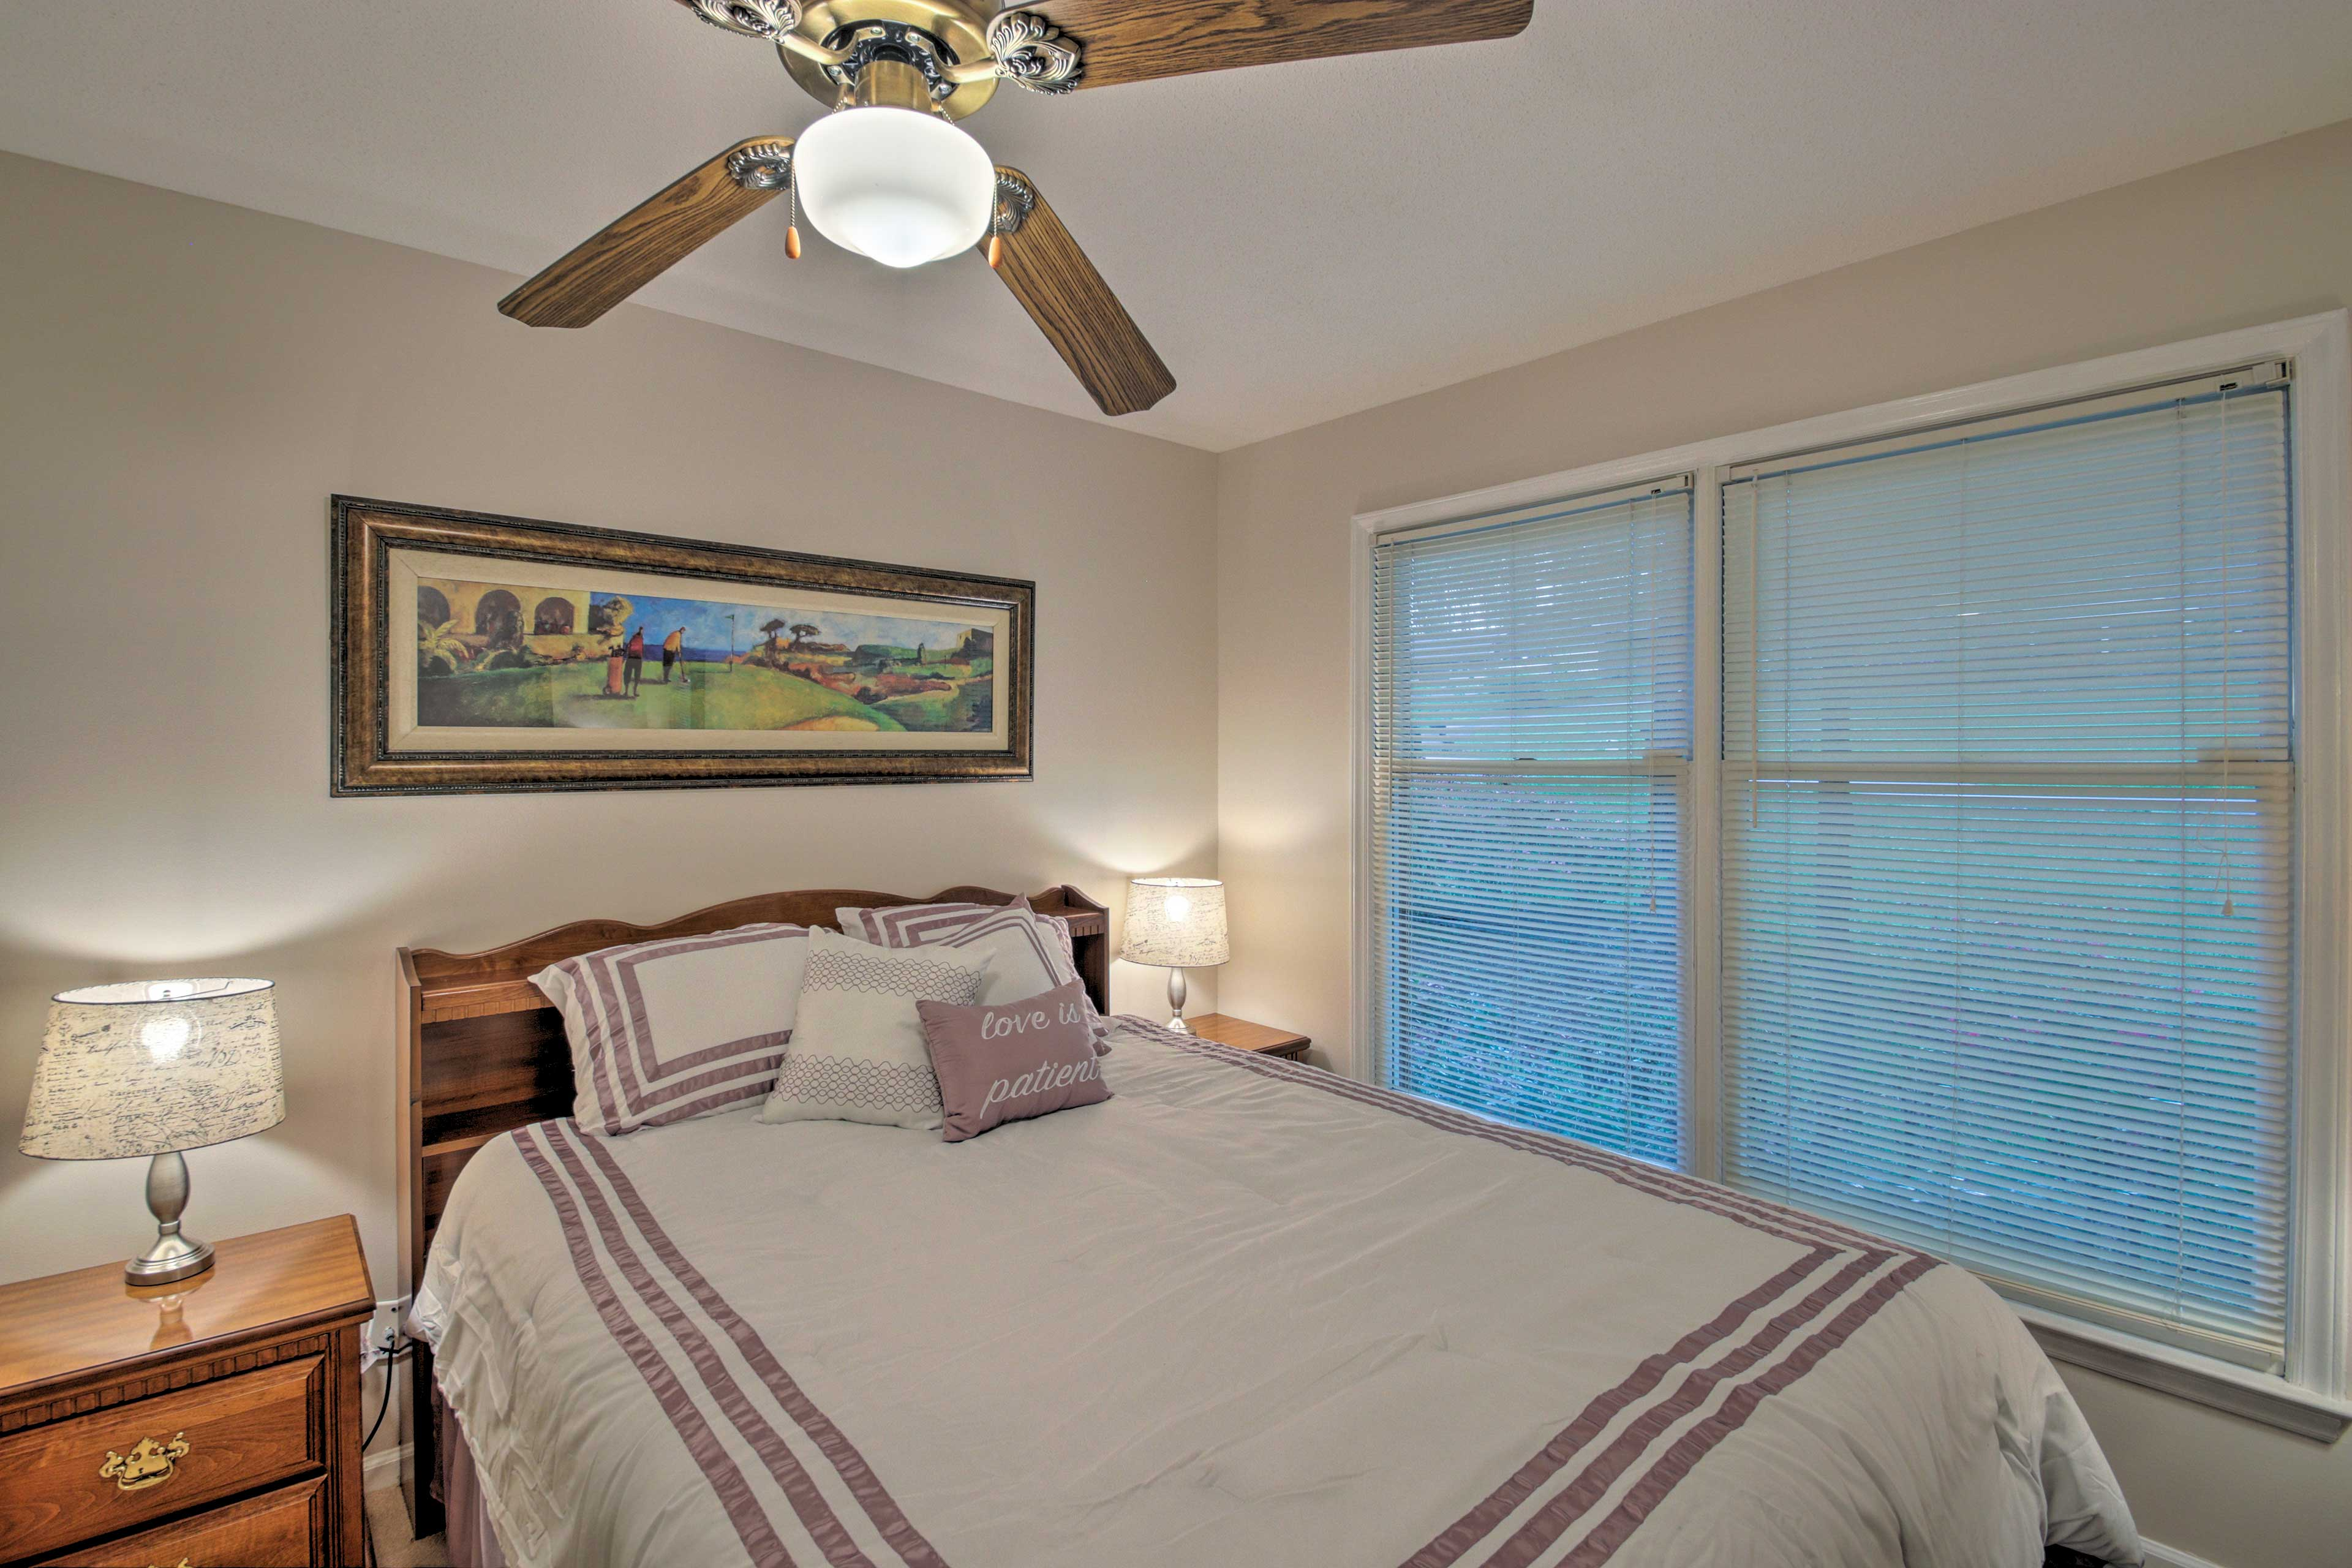 The master bedroom boasts a luxurious king-size mattress.